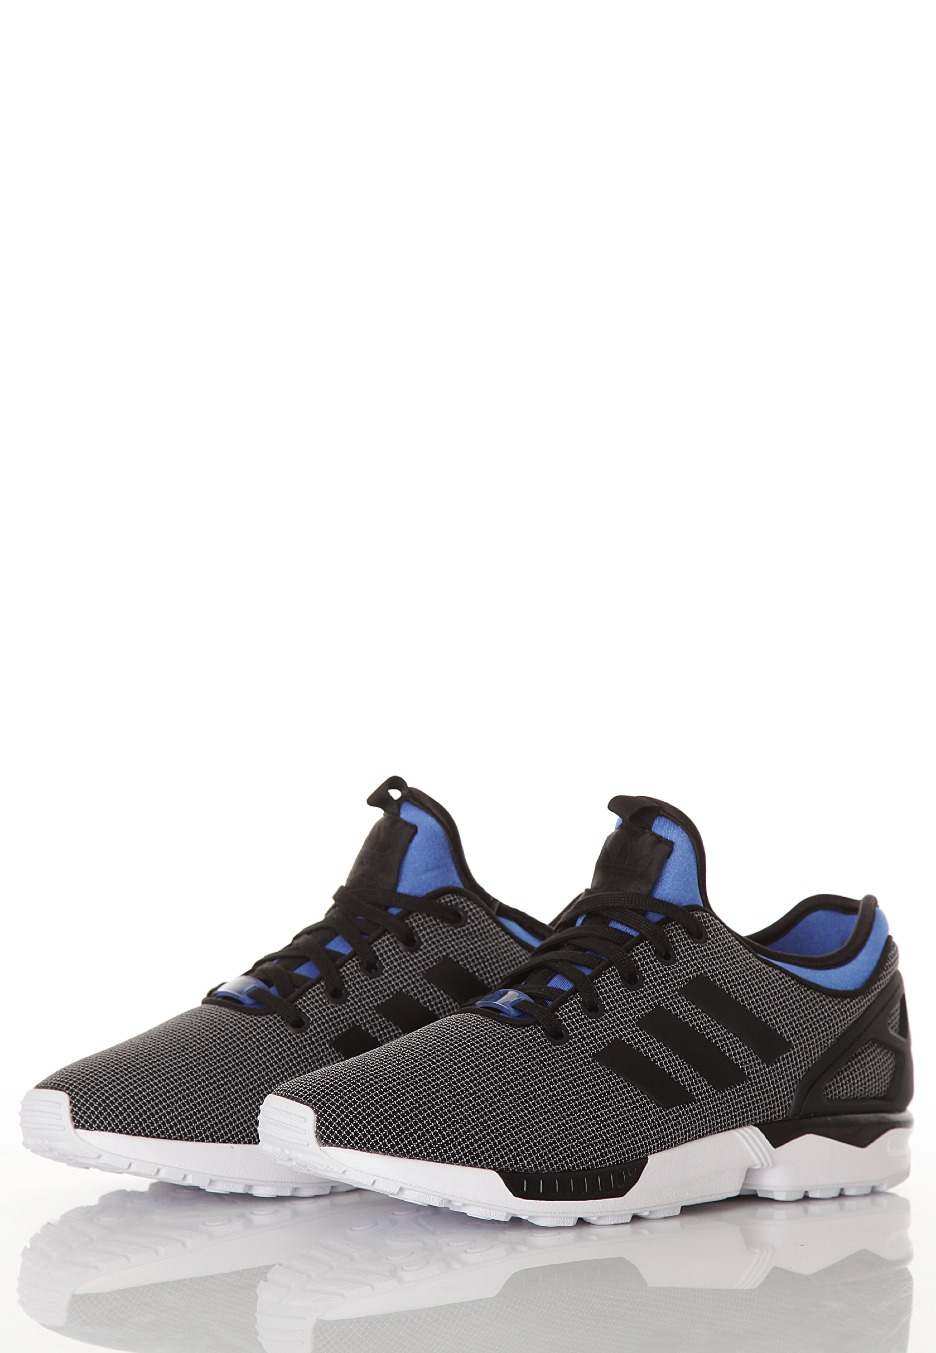 5bbb3b145882c ... italy adidas zx flux nps black black pool blue shoes e15d4 5b2f1